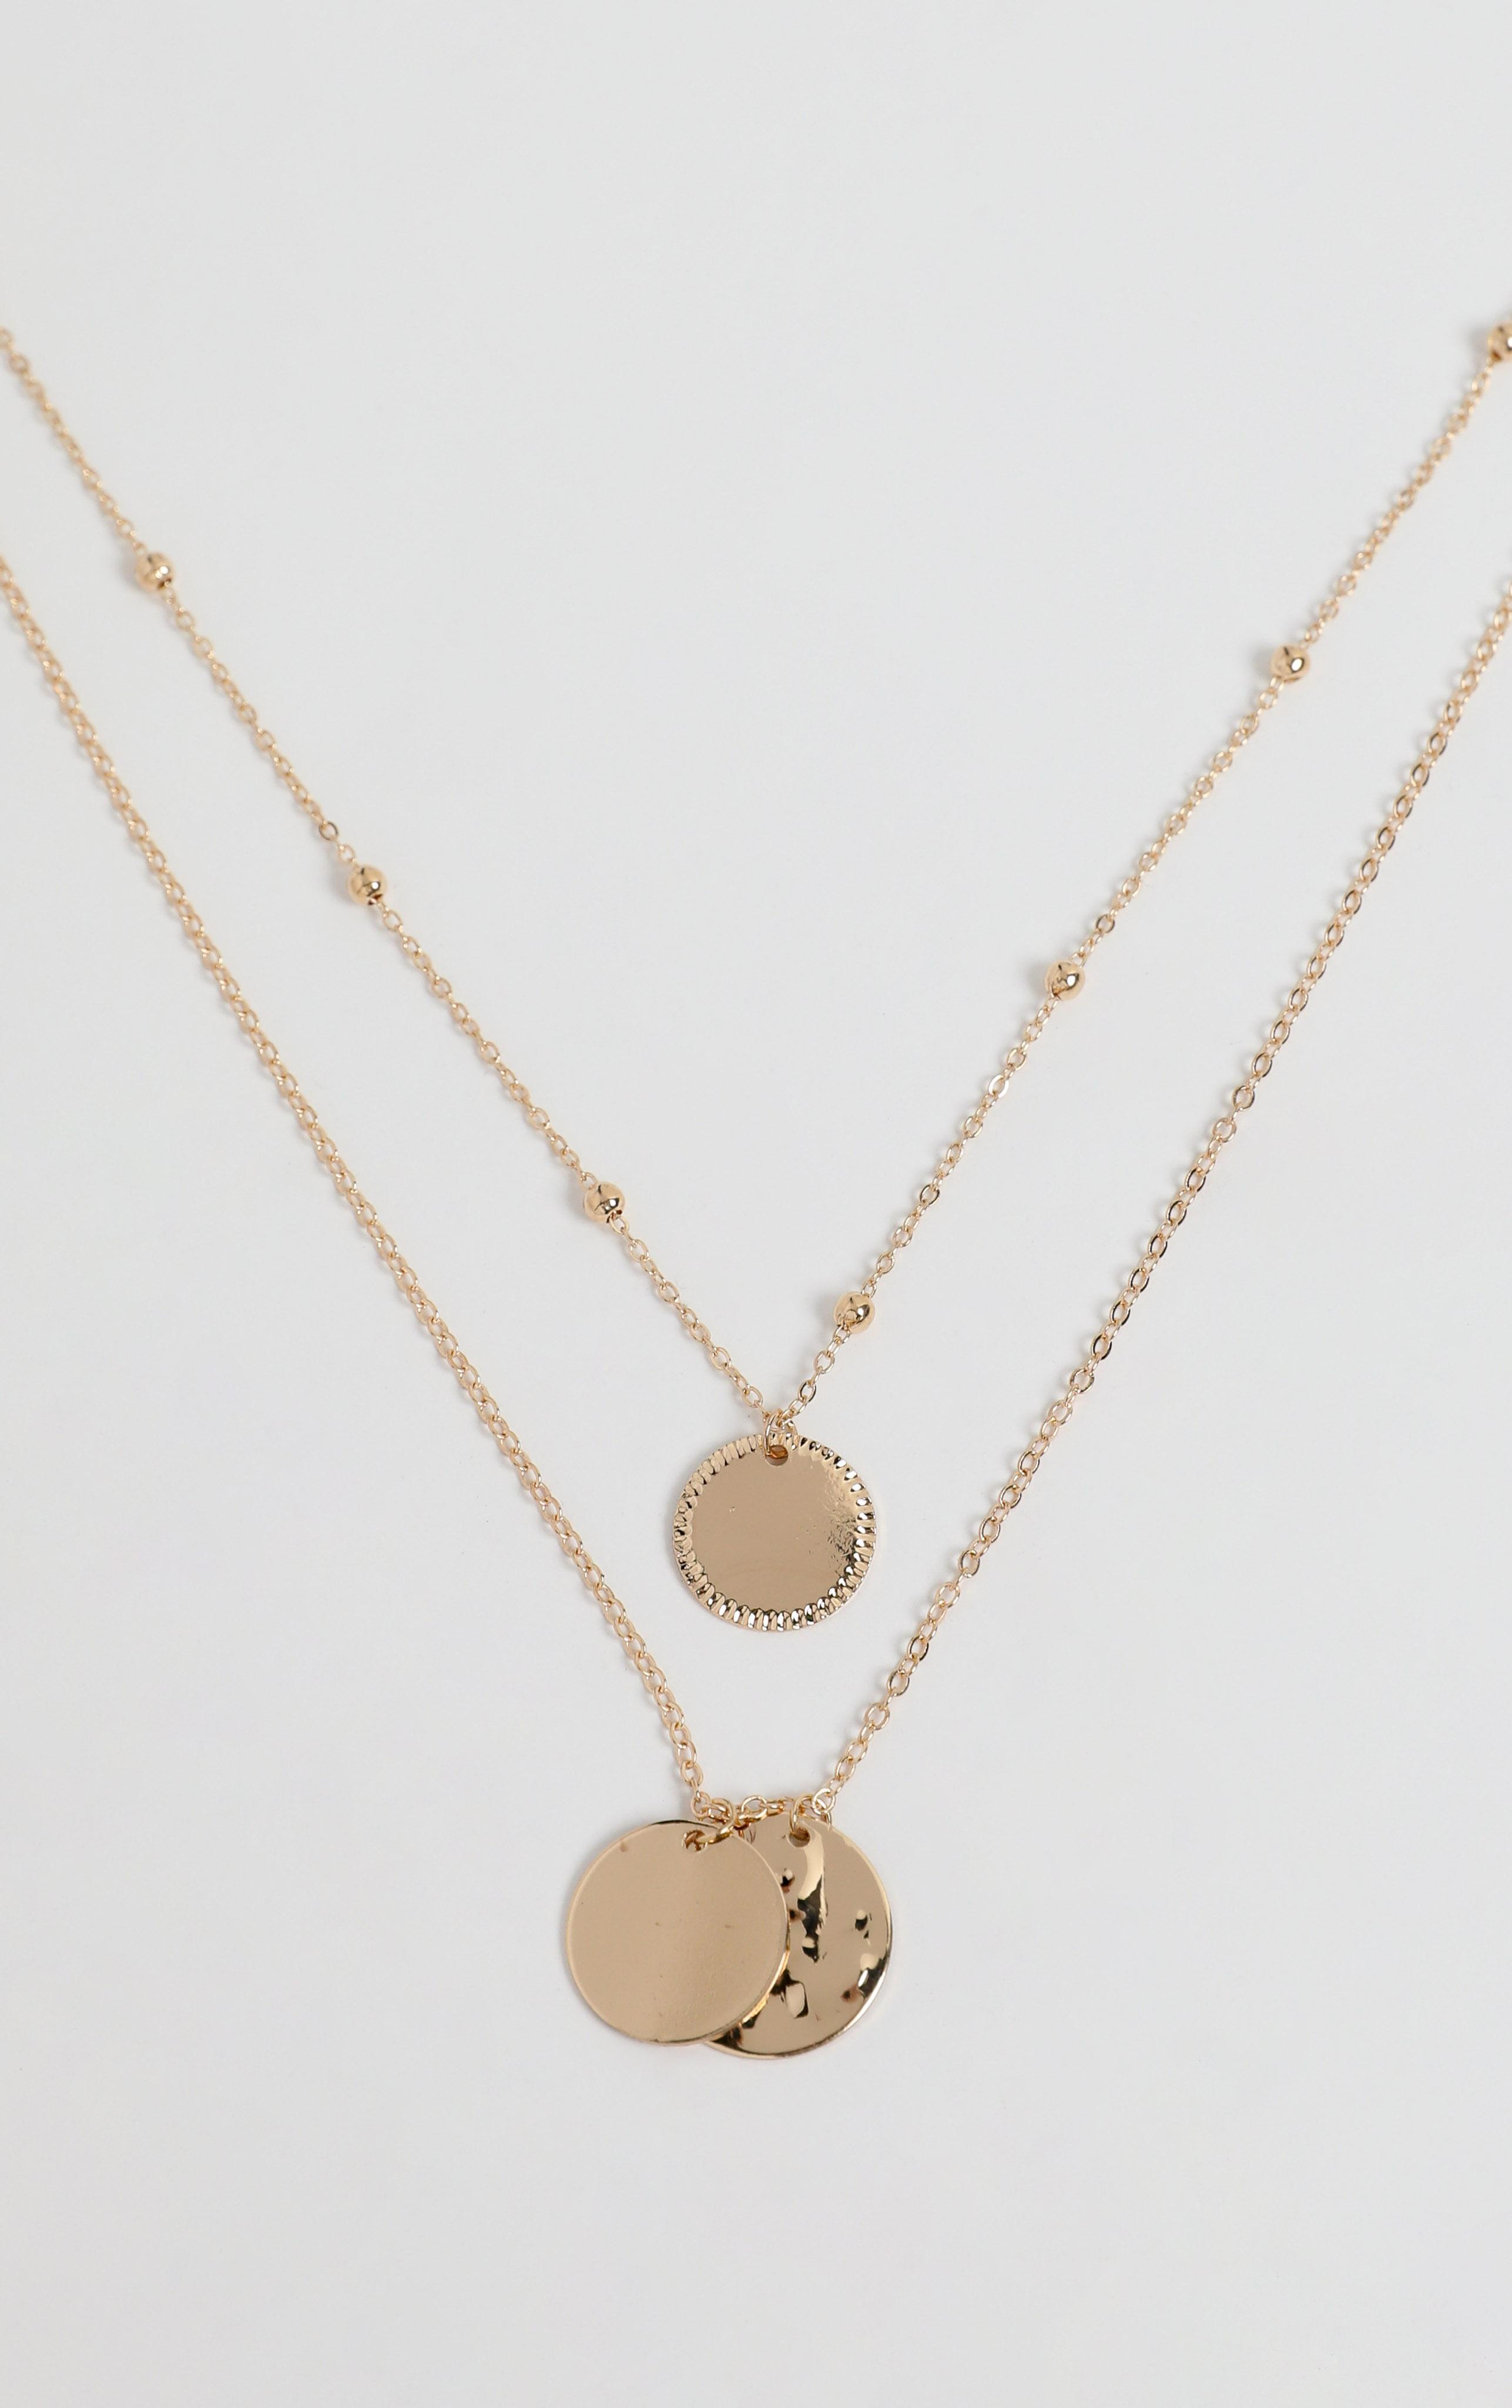 Danna Layered Necklace in Gold, , hi-res image number null